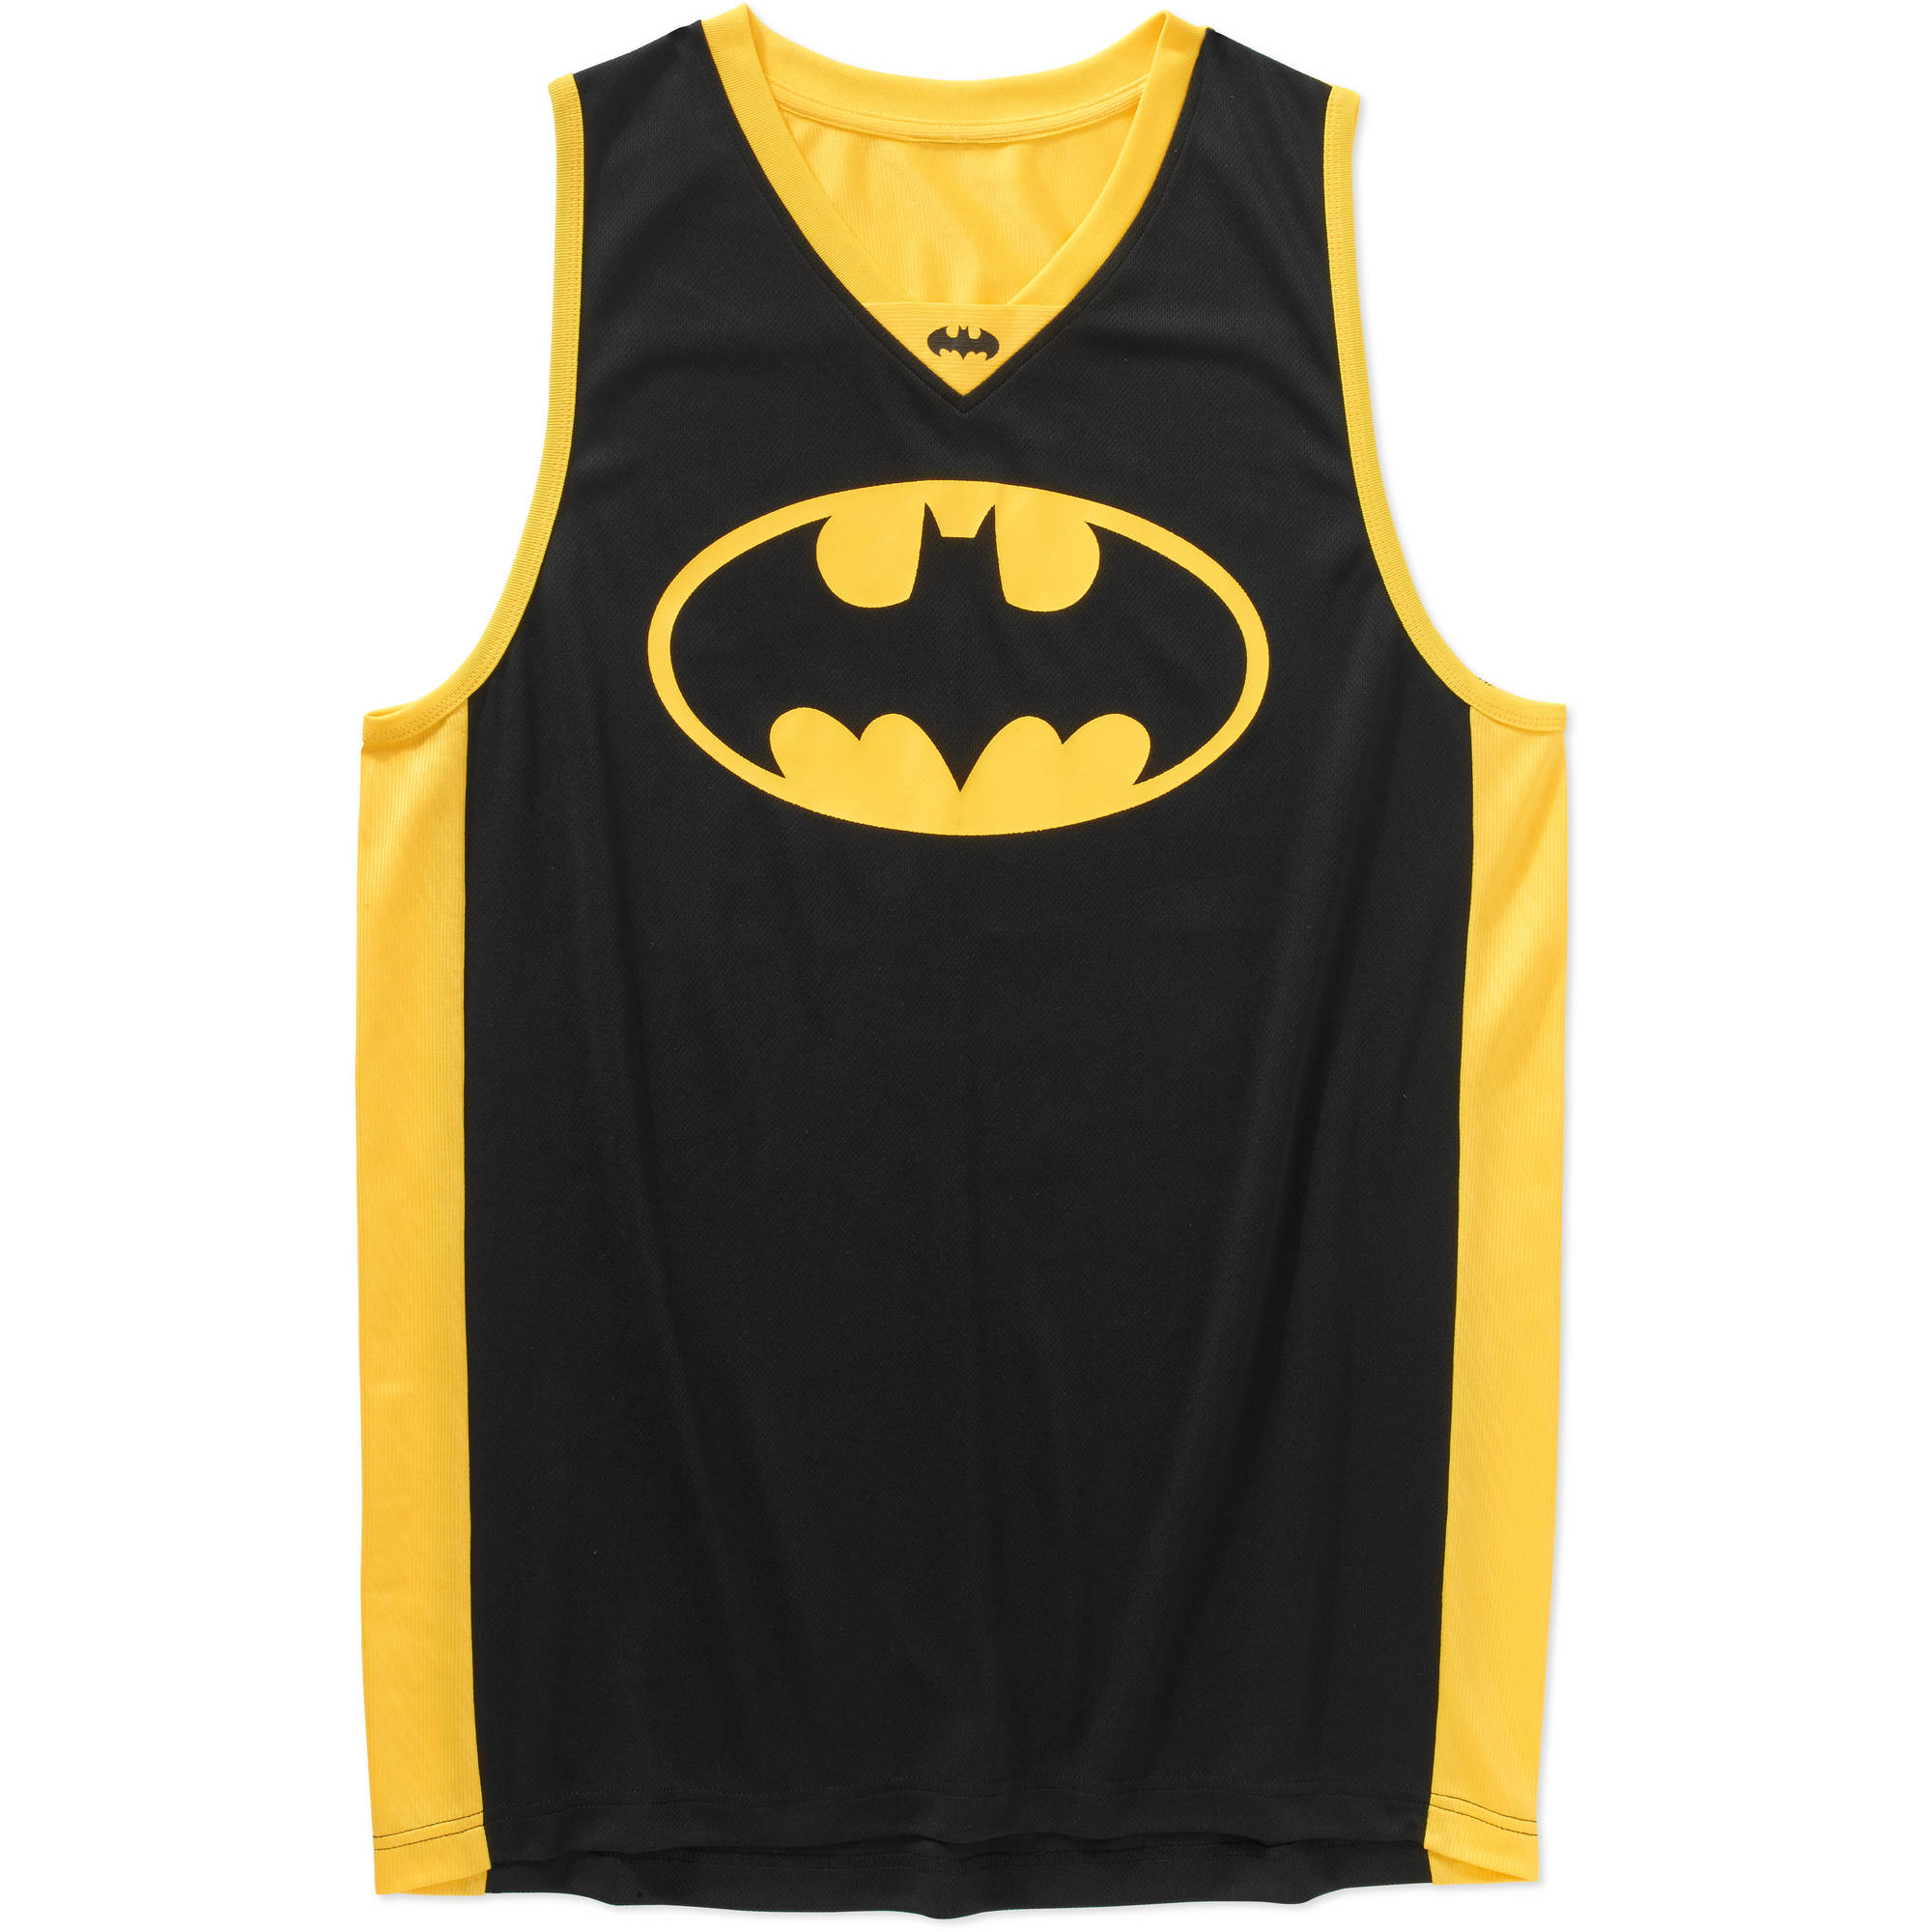 Batman Men's Graphic Licensed Basketball Jersey